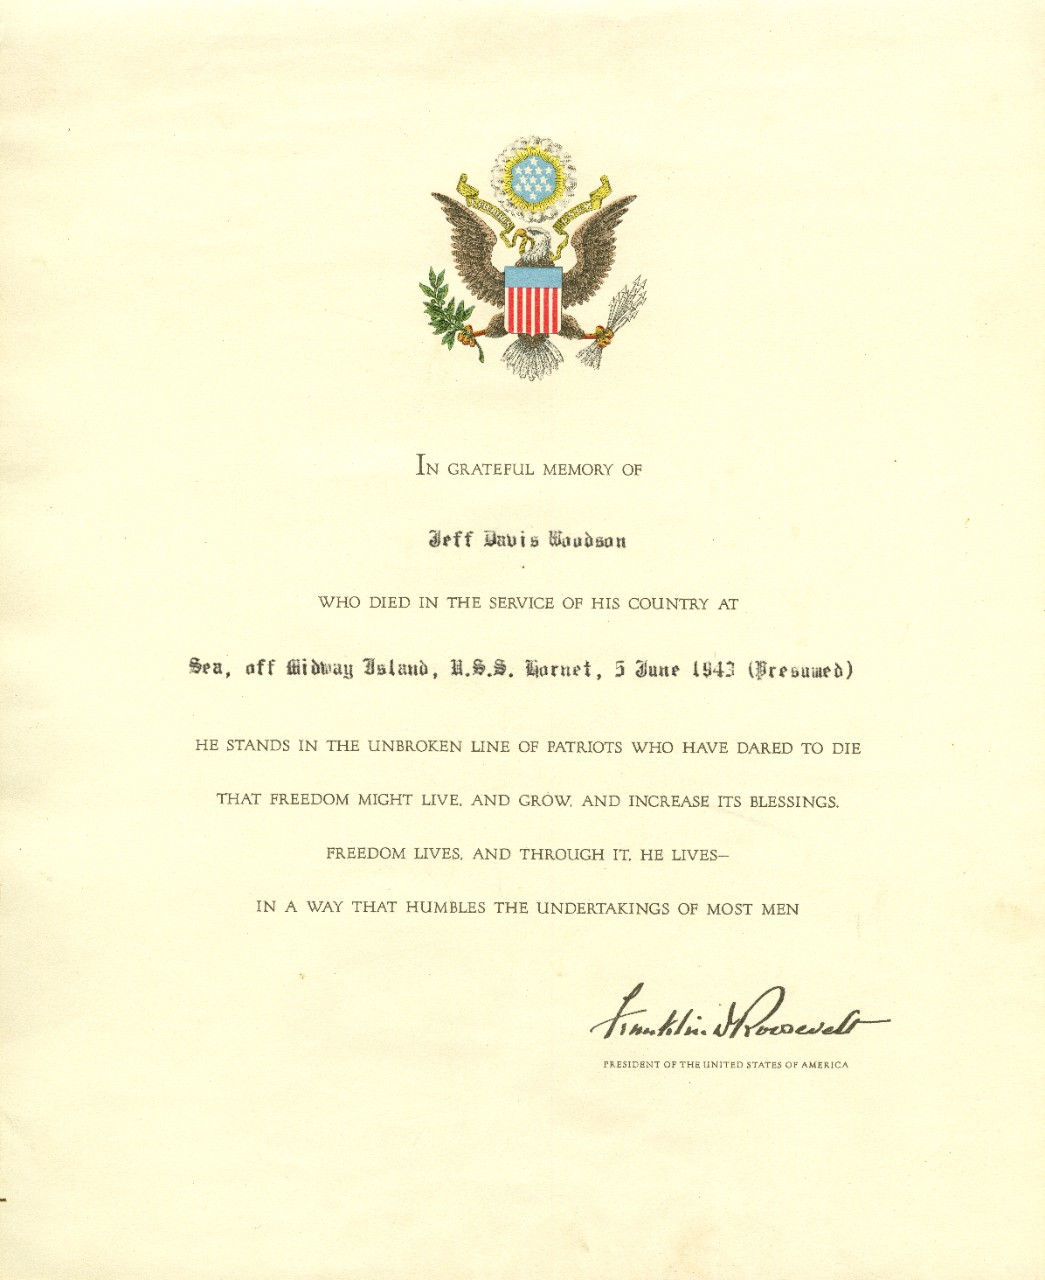 "Official memorial certificate marking the loss of LTJG Jeff Davis Woodson at the Battle of Midway signed by President Franklin D. Roosevelt. Body of certificate reads ""In Grateful Memory of / Jeff Davis Woodson / who died in the service of his country at / sea, off Midway Island, U.S.S. Hornet, 5 June 1943 (Presumed) / He stands in the unbroken line of patriots who have dared to die / that freedom might live, and grow, and increase its blessings. / Freedom lives. And Through it, he lives- / in a way that humbles the undertakings of most men / Franklin D Roosevelt (Signed) / President of the United States of America""."